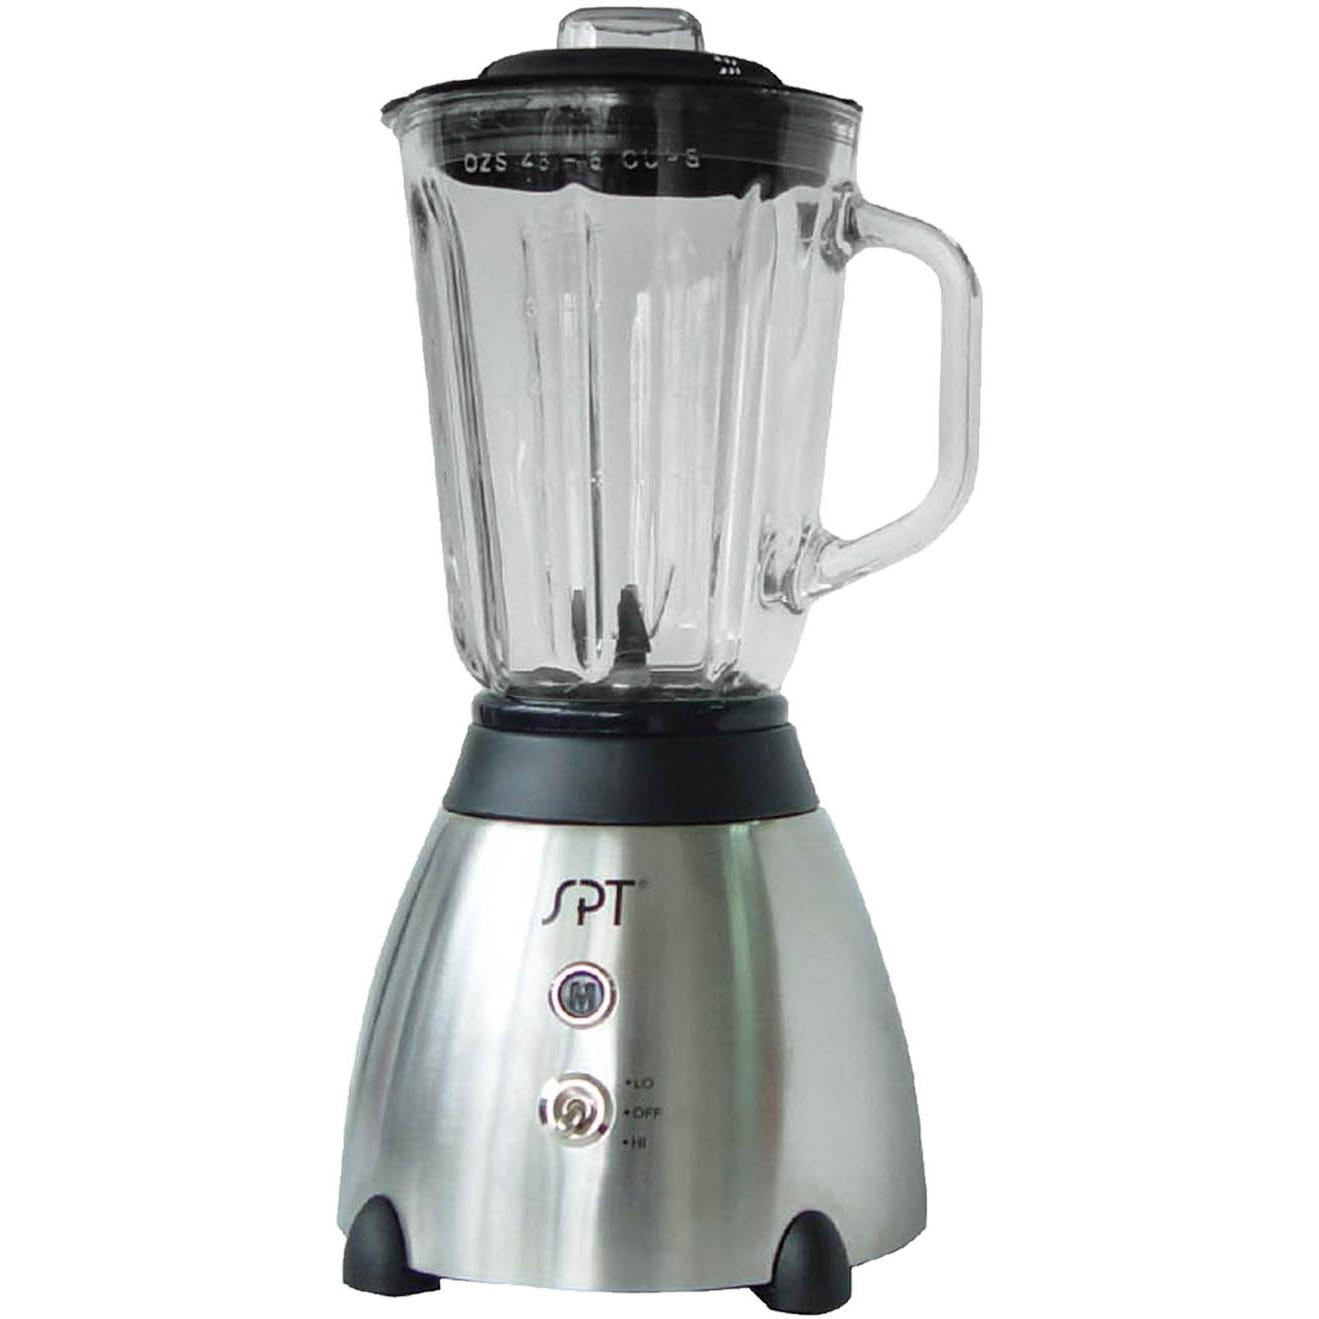 Sunpentown Stainless Steel Blender - CL-510